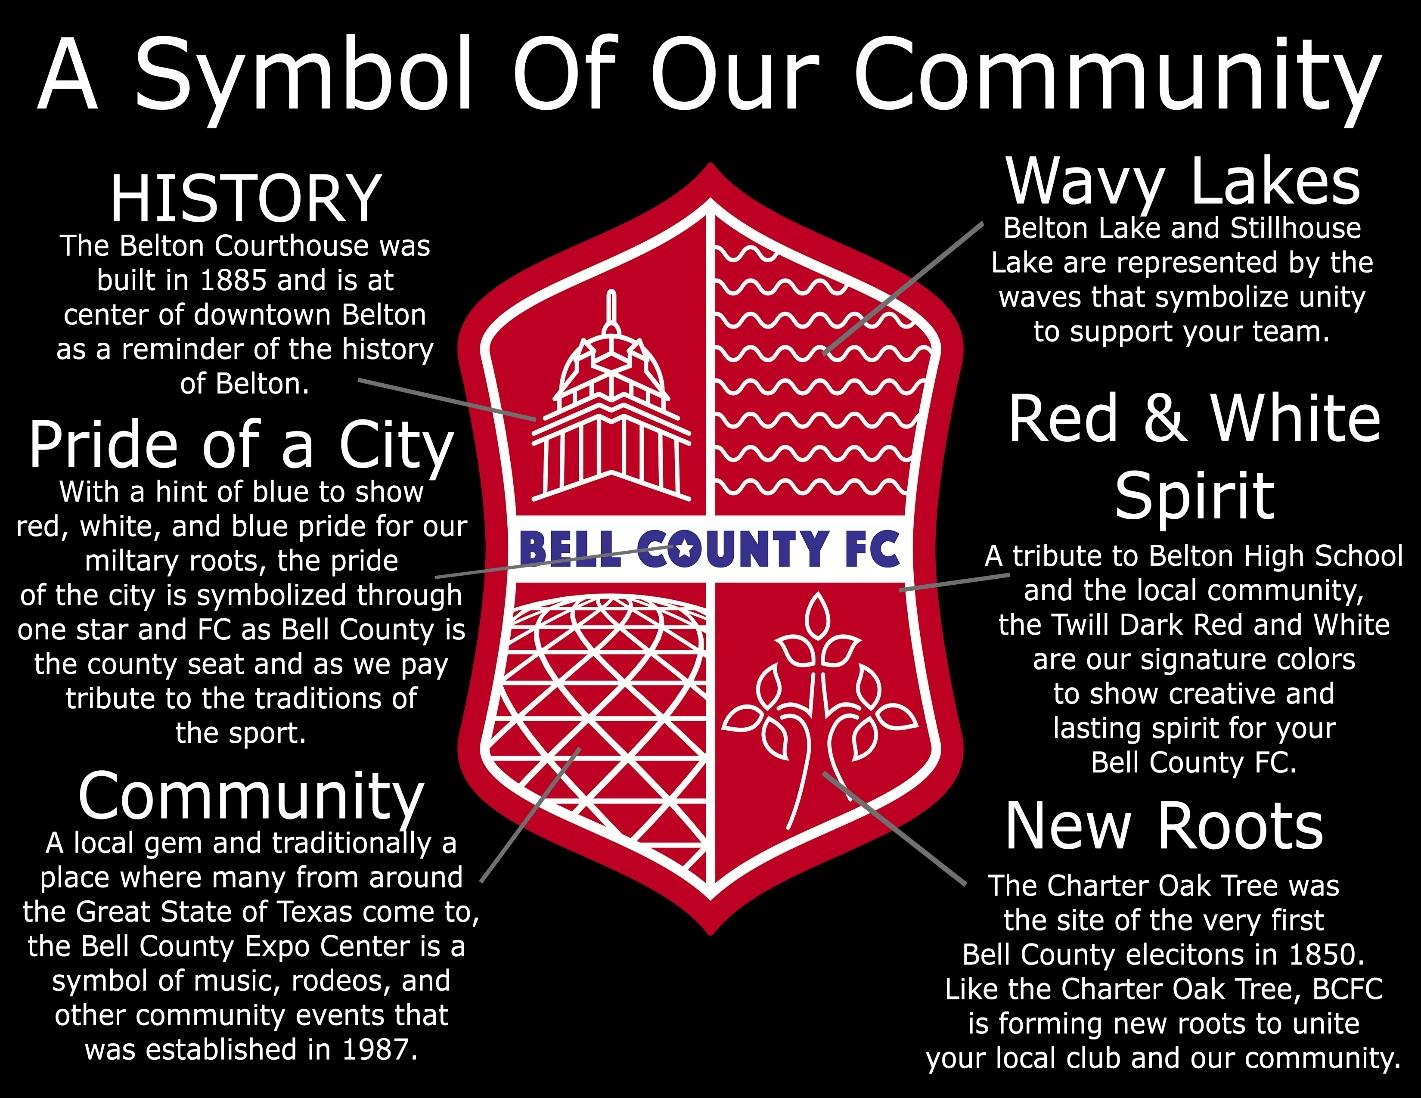 Some thought and care went into this badge, Its original and well-executed.